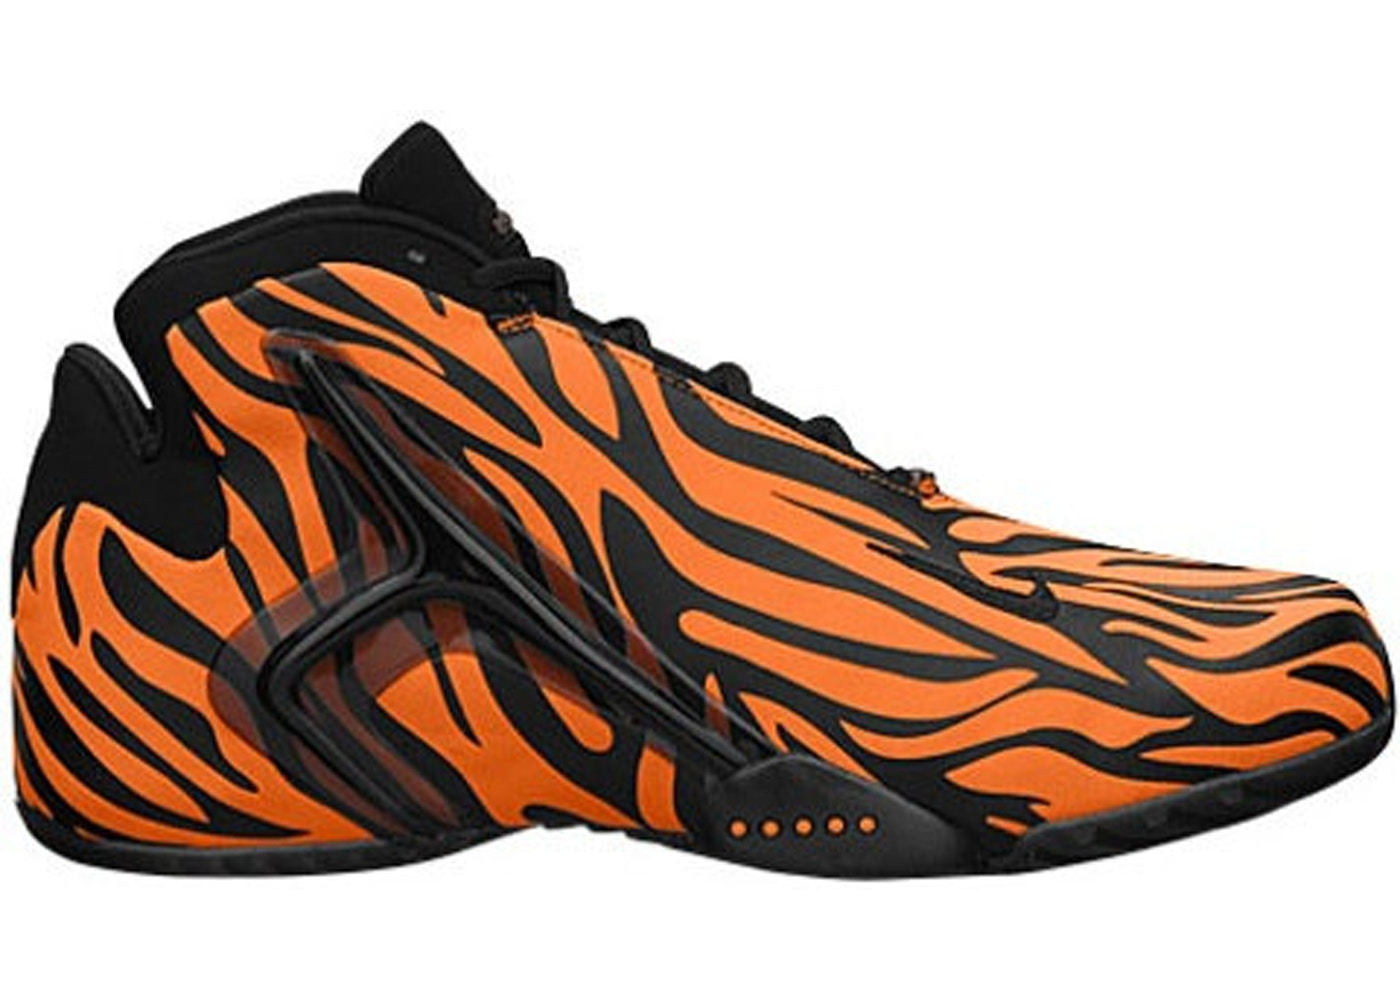 official photos 30331 4299f Nike Basketball Other Shoes - Volatility